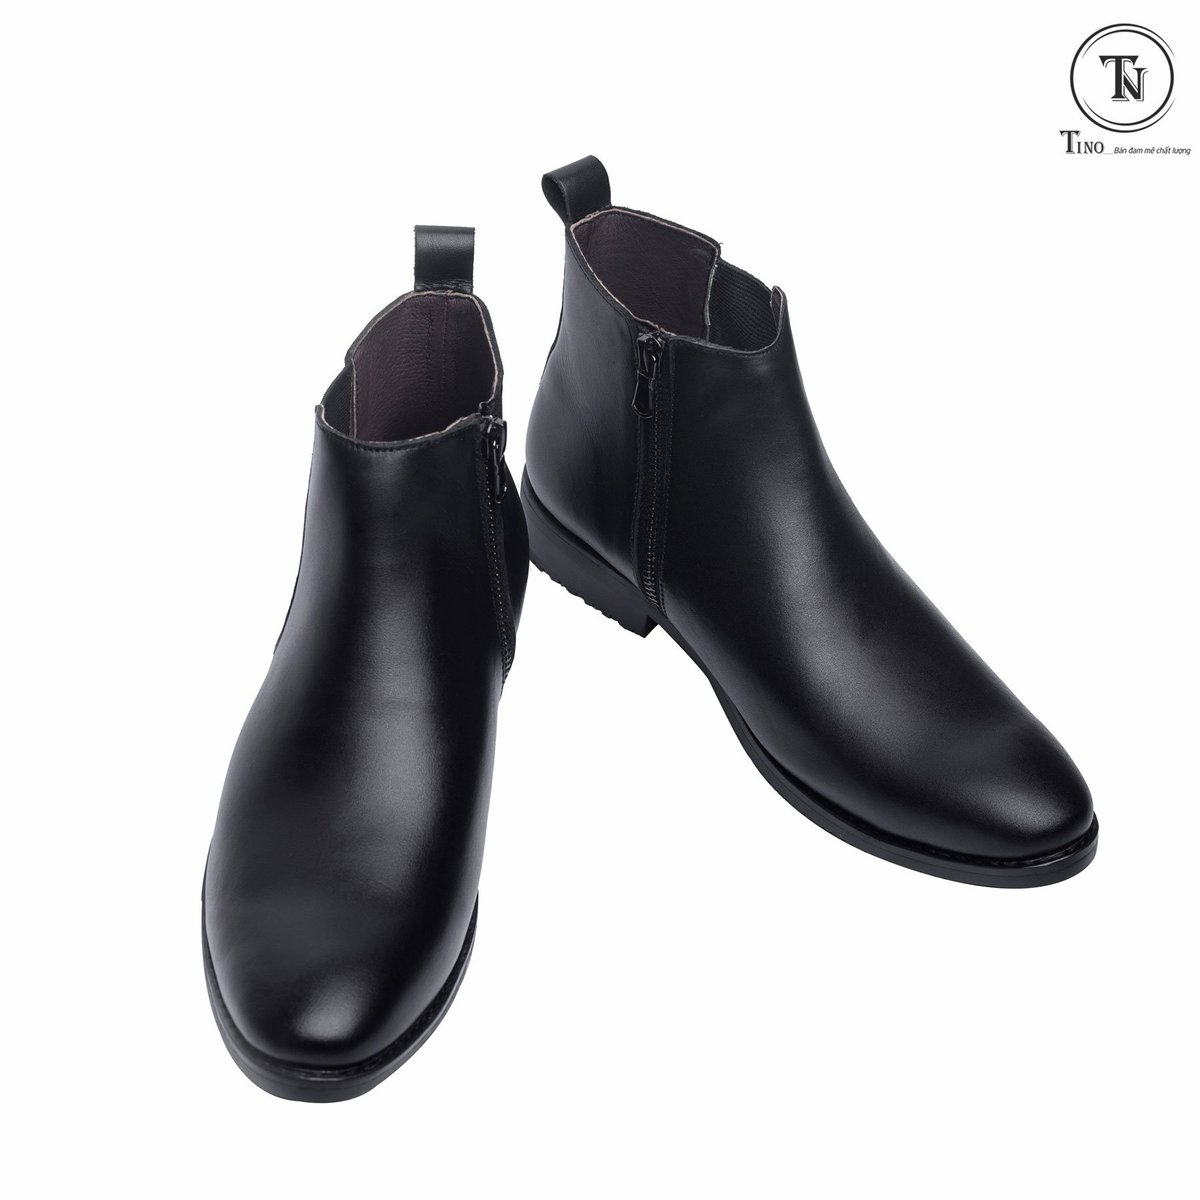 Giày chelsea boots nam GC06 2019 https://t.co/WFEYtMAxKB https://t.co/nsGMTDXwnJ